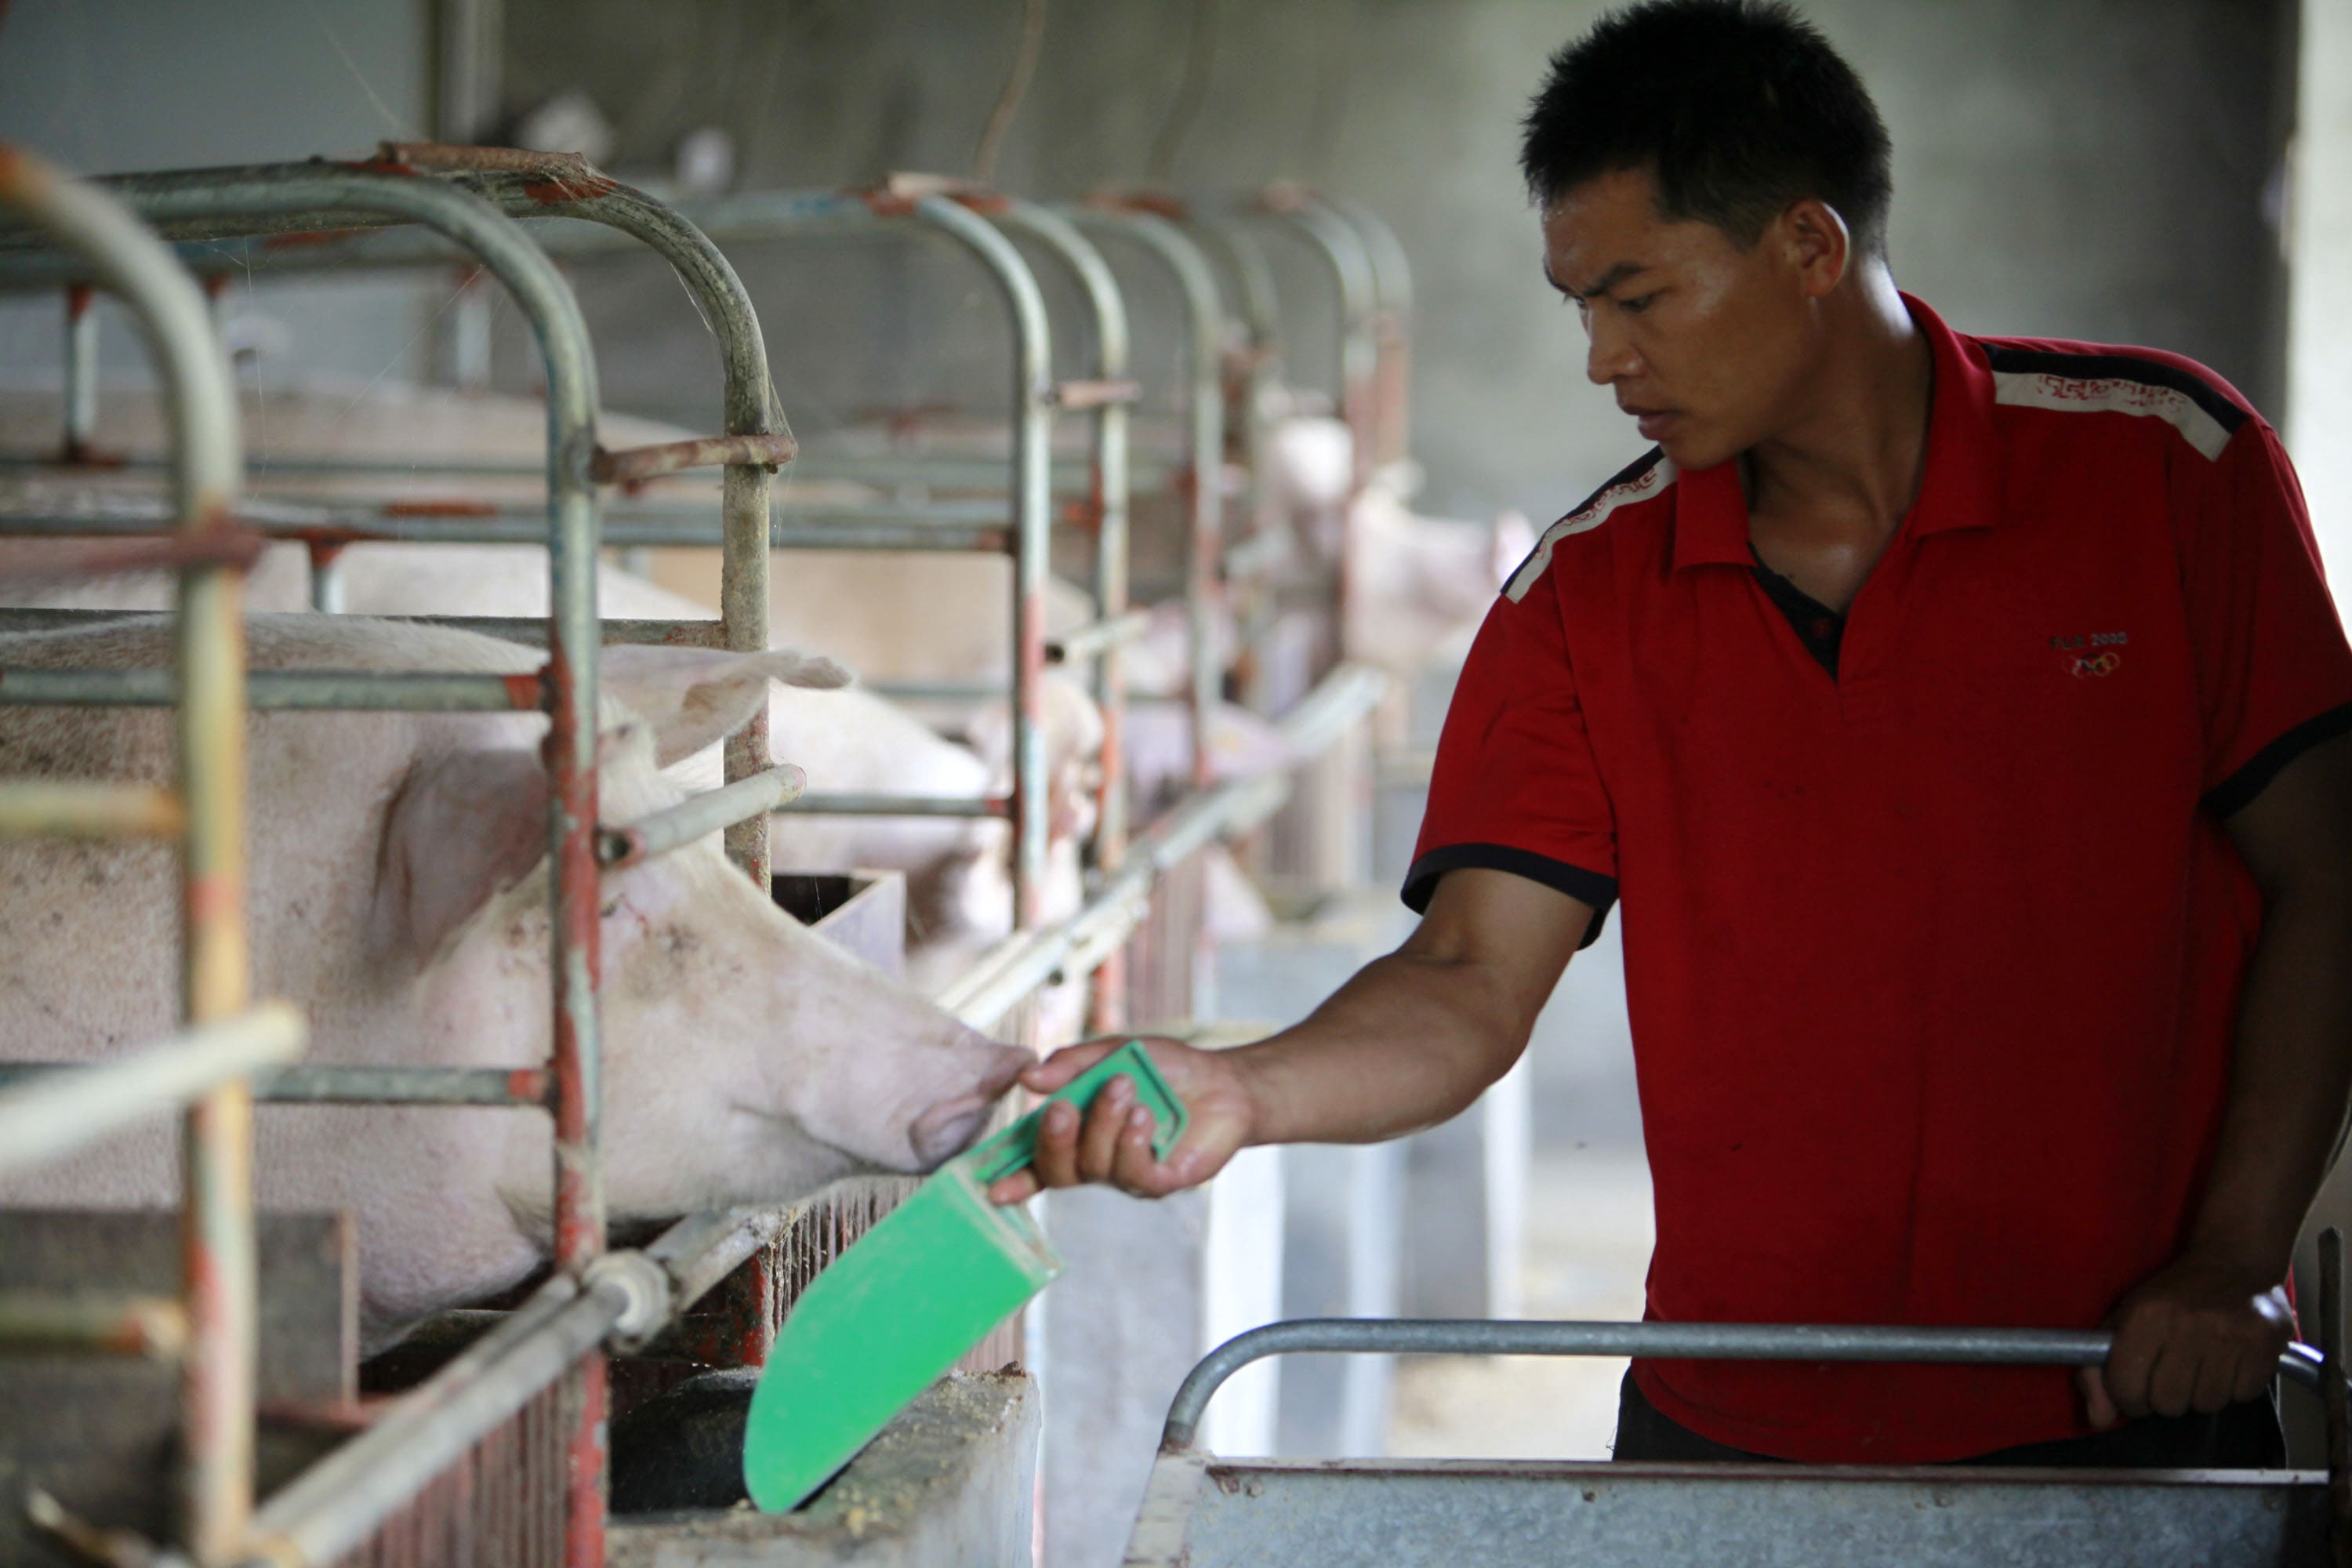 Amid swine fever outbreak, China's pork output in the first half of 2019 falls